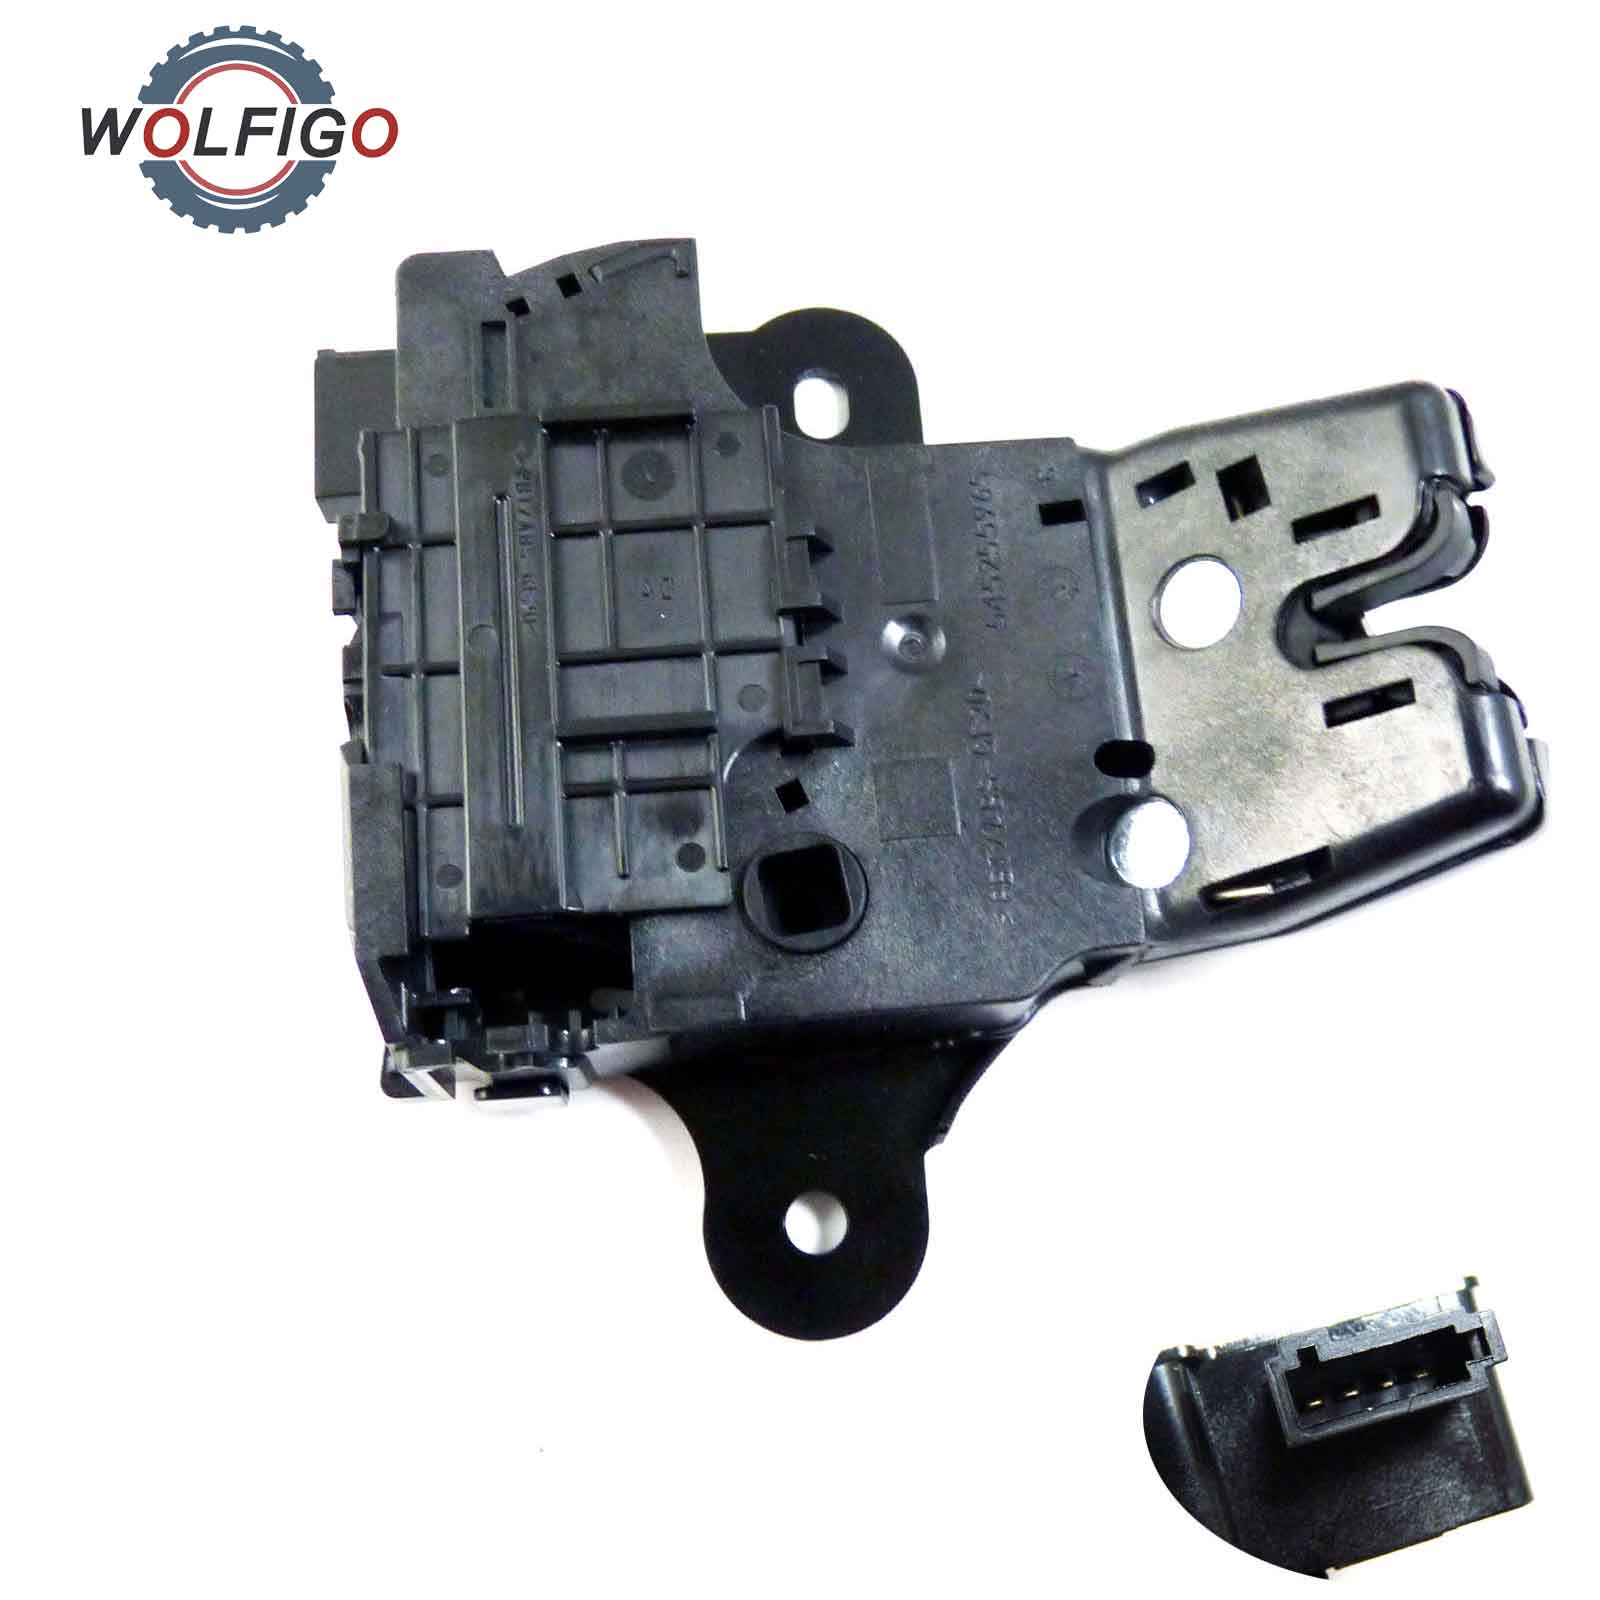 medium resolution of wolfigo trunk lock lid latch 13501988 for chery chevrolet malibu camaro sonic curze cadillac cts ats buick regal verano lacrosse in trunk lids parts from